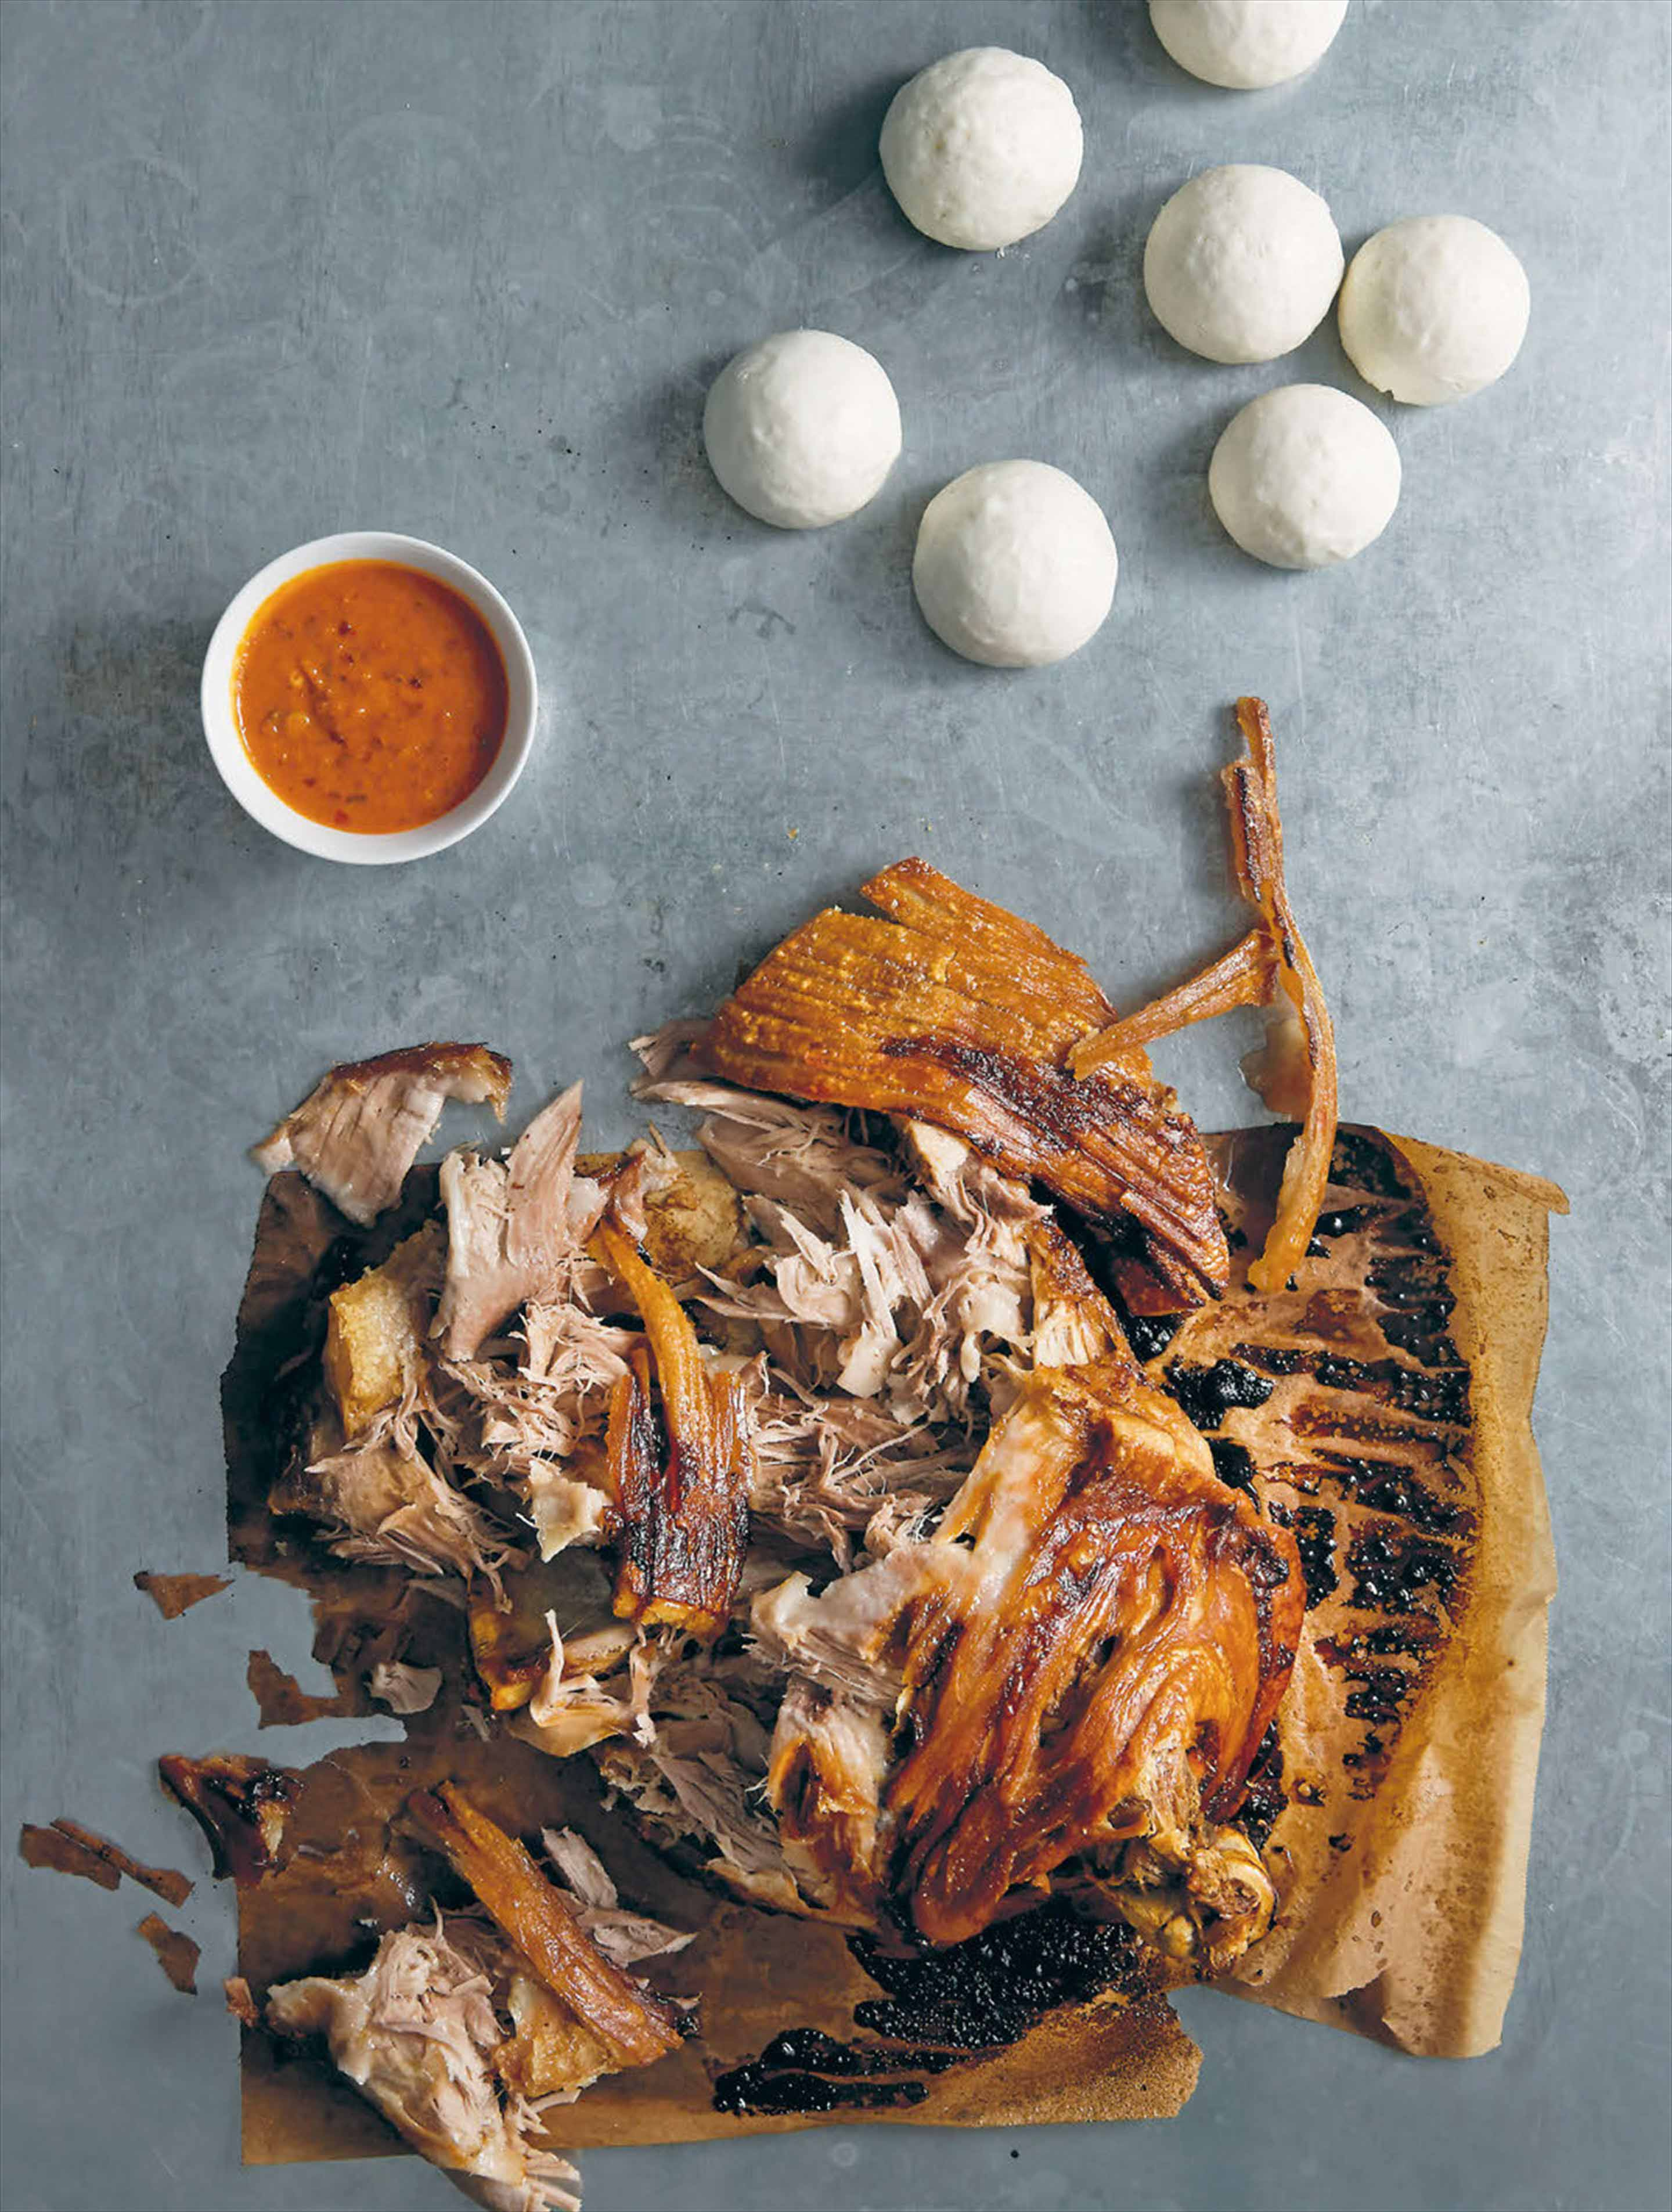 Roast pork shoulder, pickled cabbage, crackling, ssamjang